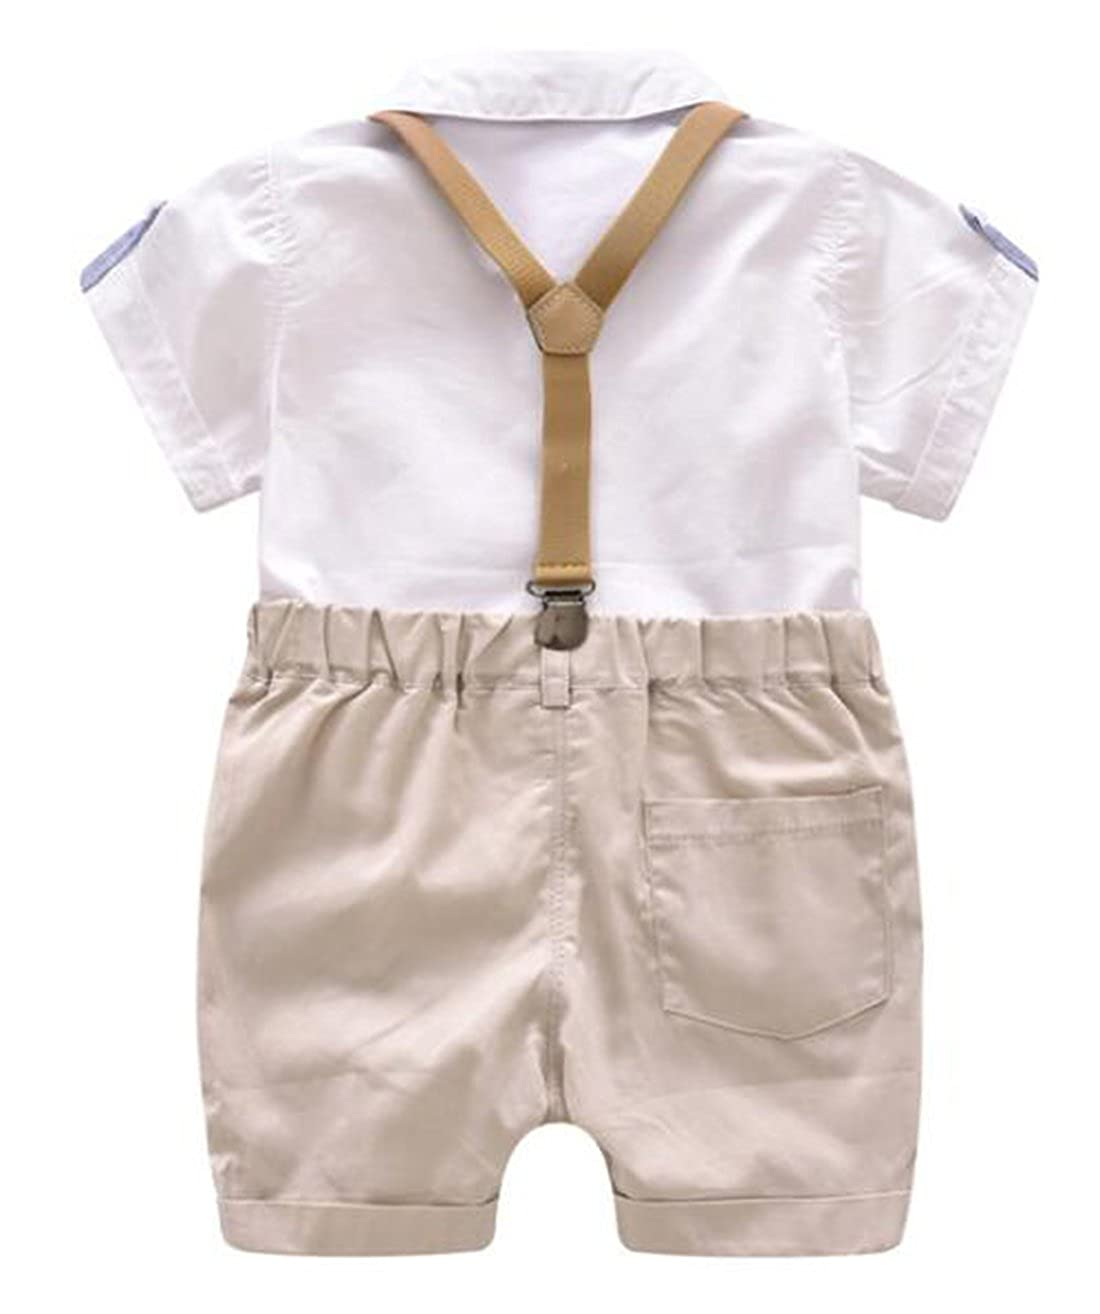 EGELEXY Toddler Baby Boys Gentleman Outfits Short Sleeve T-Shirt+Bib Pants+Bow Tie 3Pcs